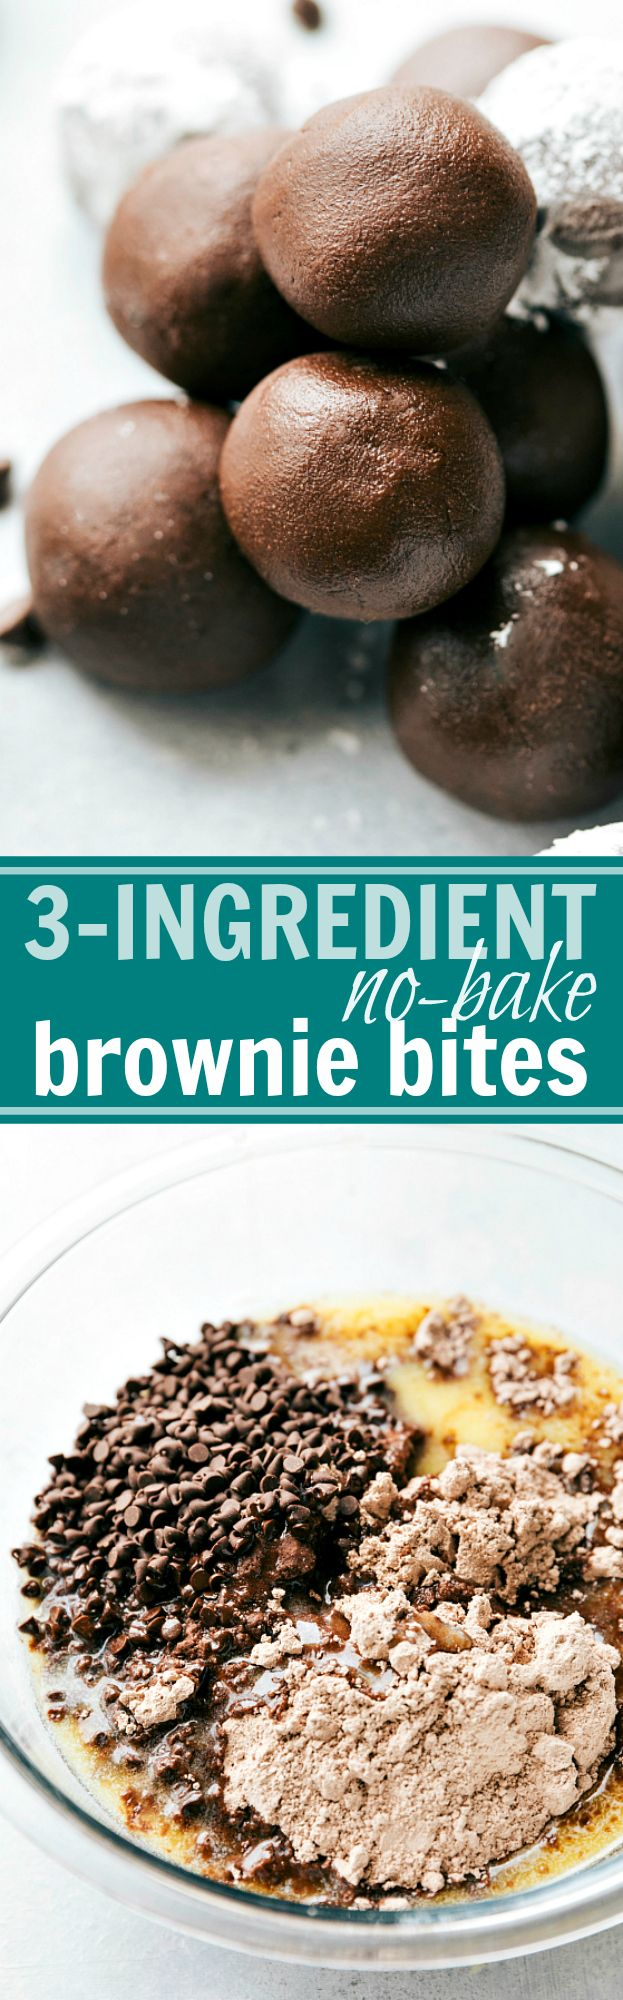 No Bake: (No Bake) Brownie Bites - Chelsea's Messy Apron